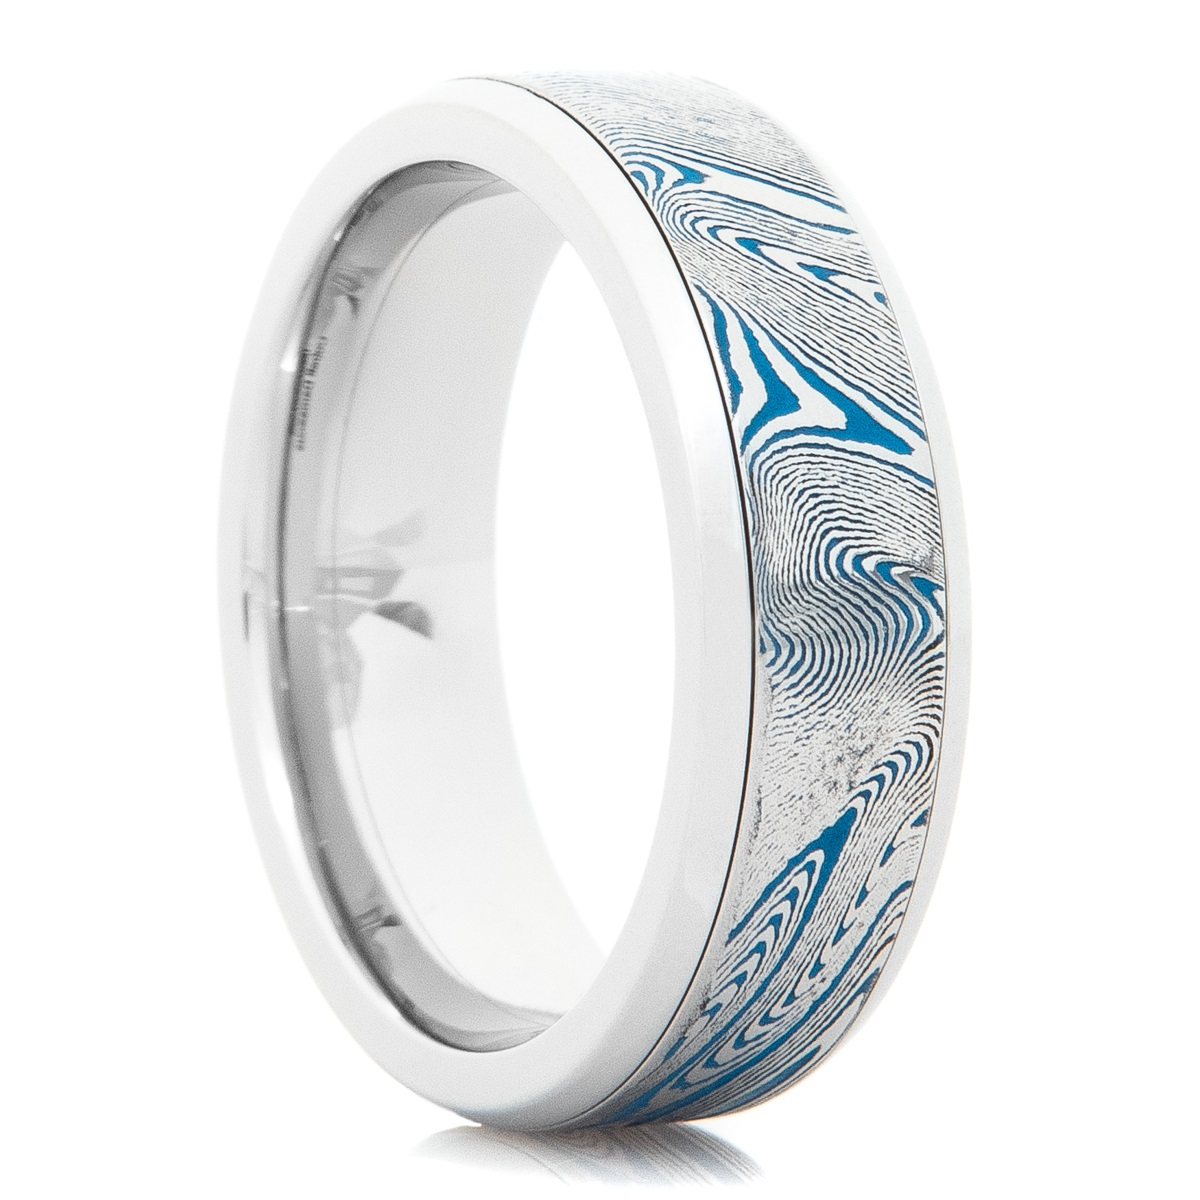 Polished Damascus Steel Ring with Blue Cerakote Accents